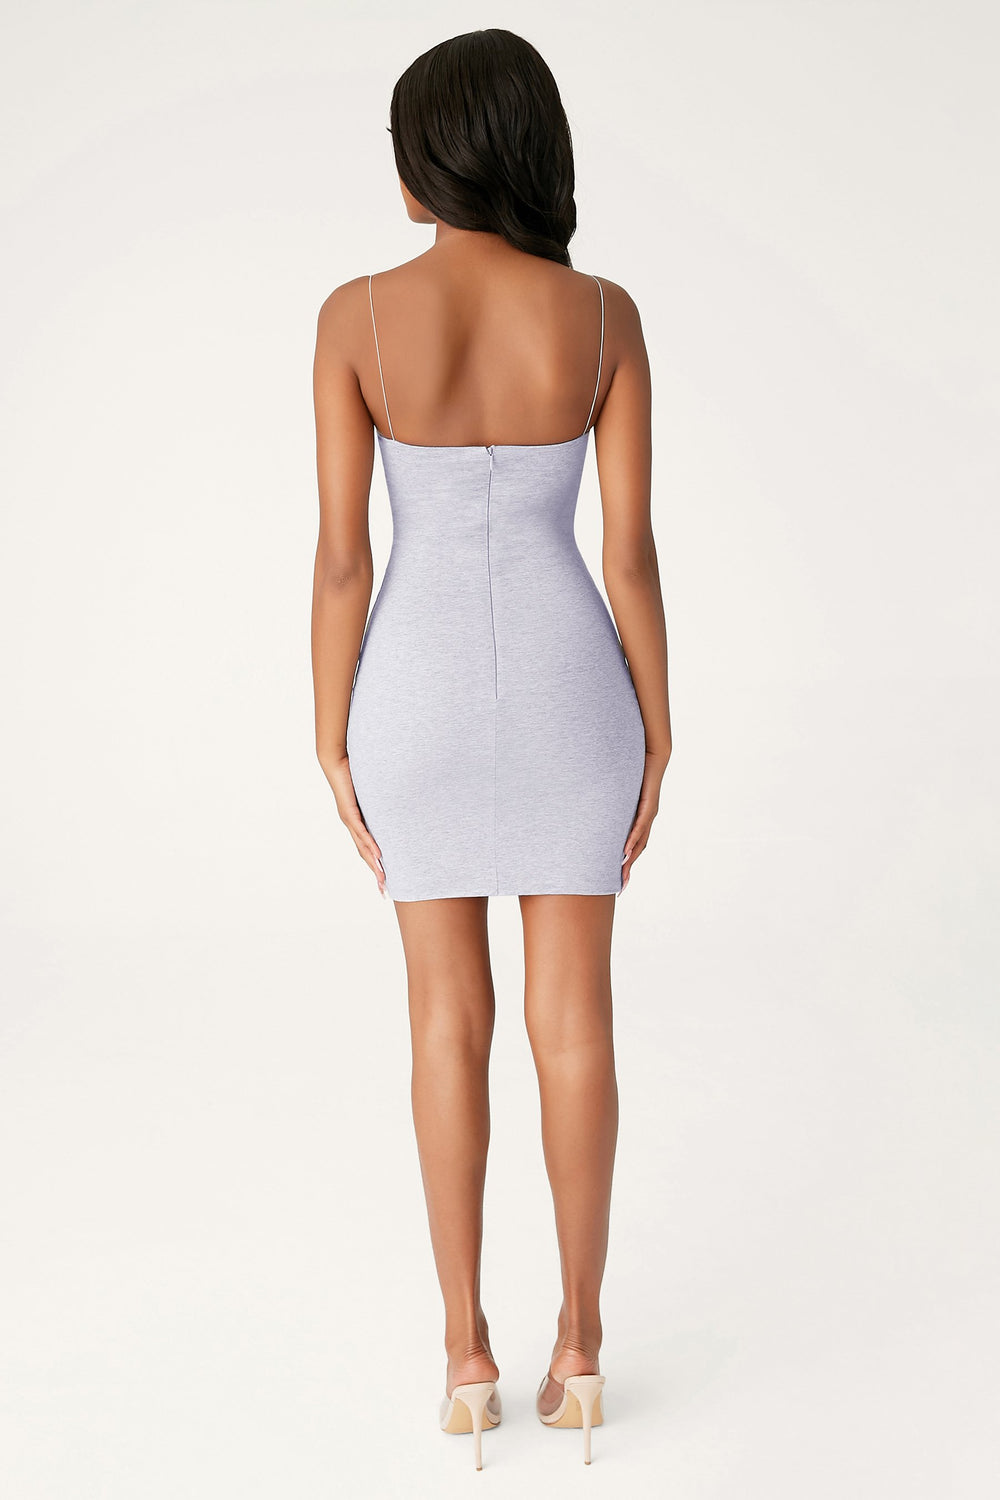 Mia Thin Strap Bodycon Mini Dress - Grey Marle - MESHKI